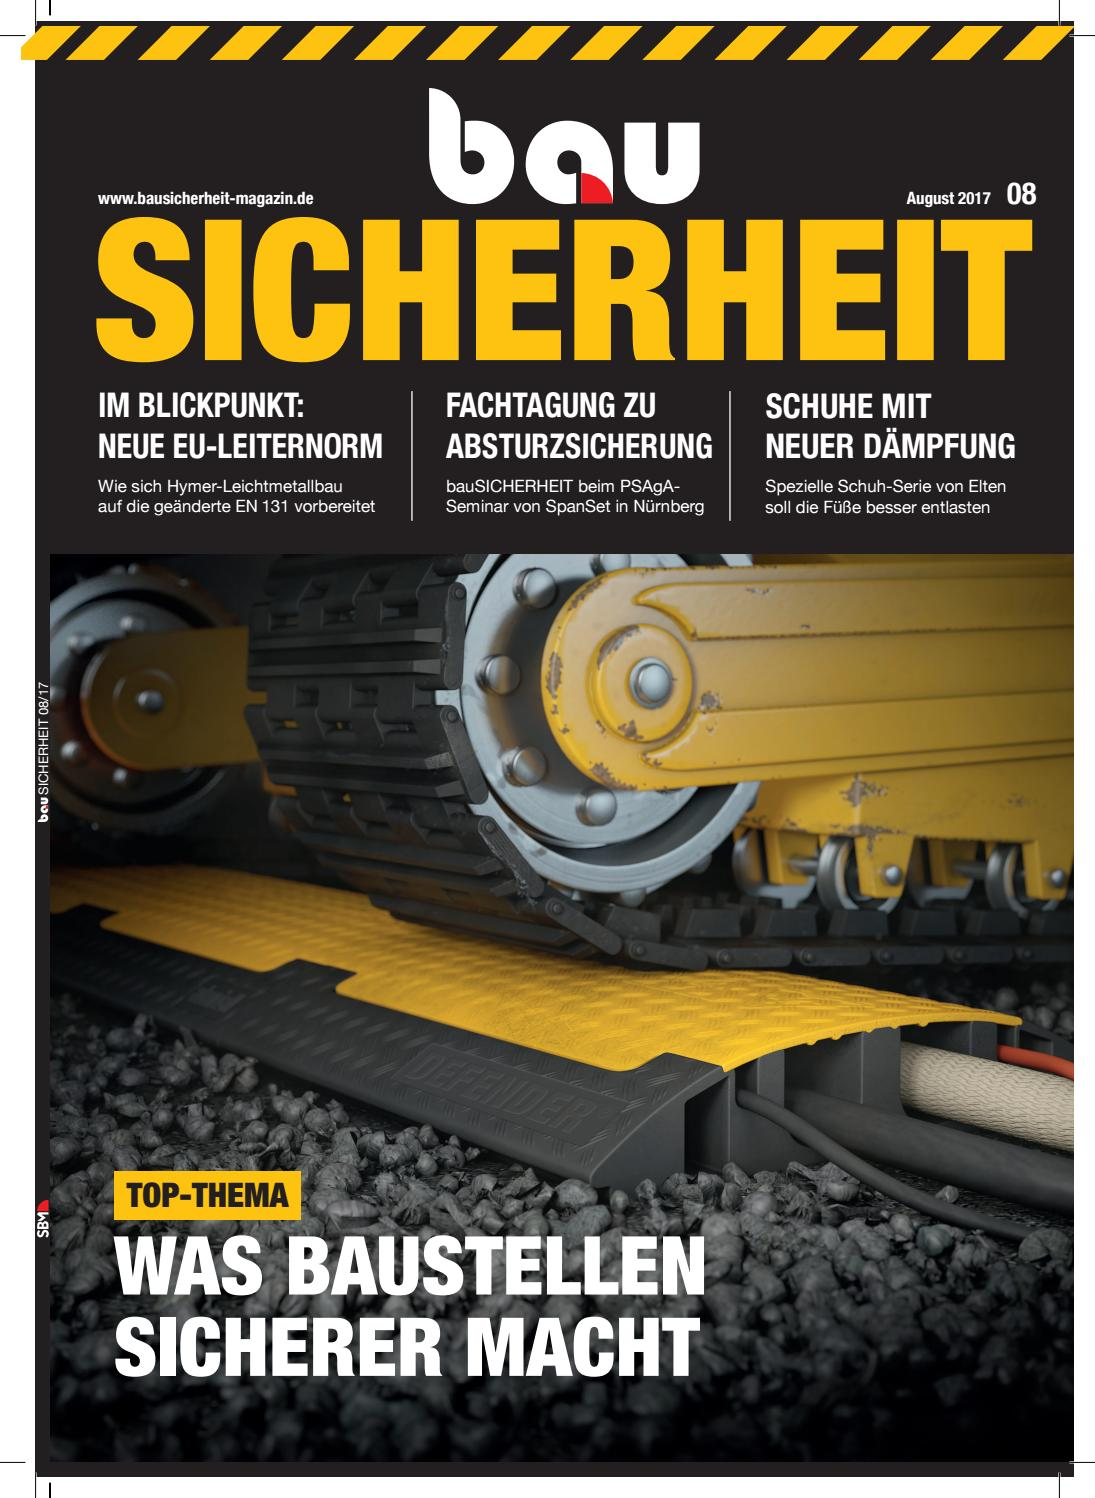 bauSICHERHEIT August 2017 by SBM Verlag GmbH - issuu